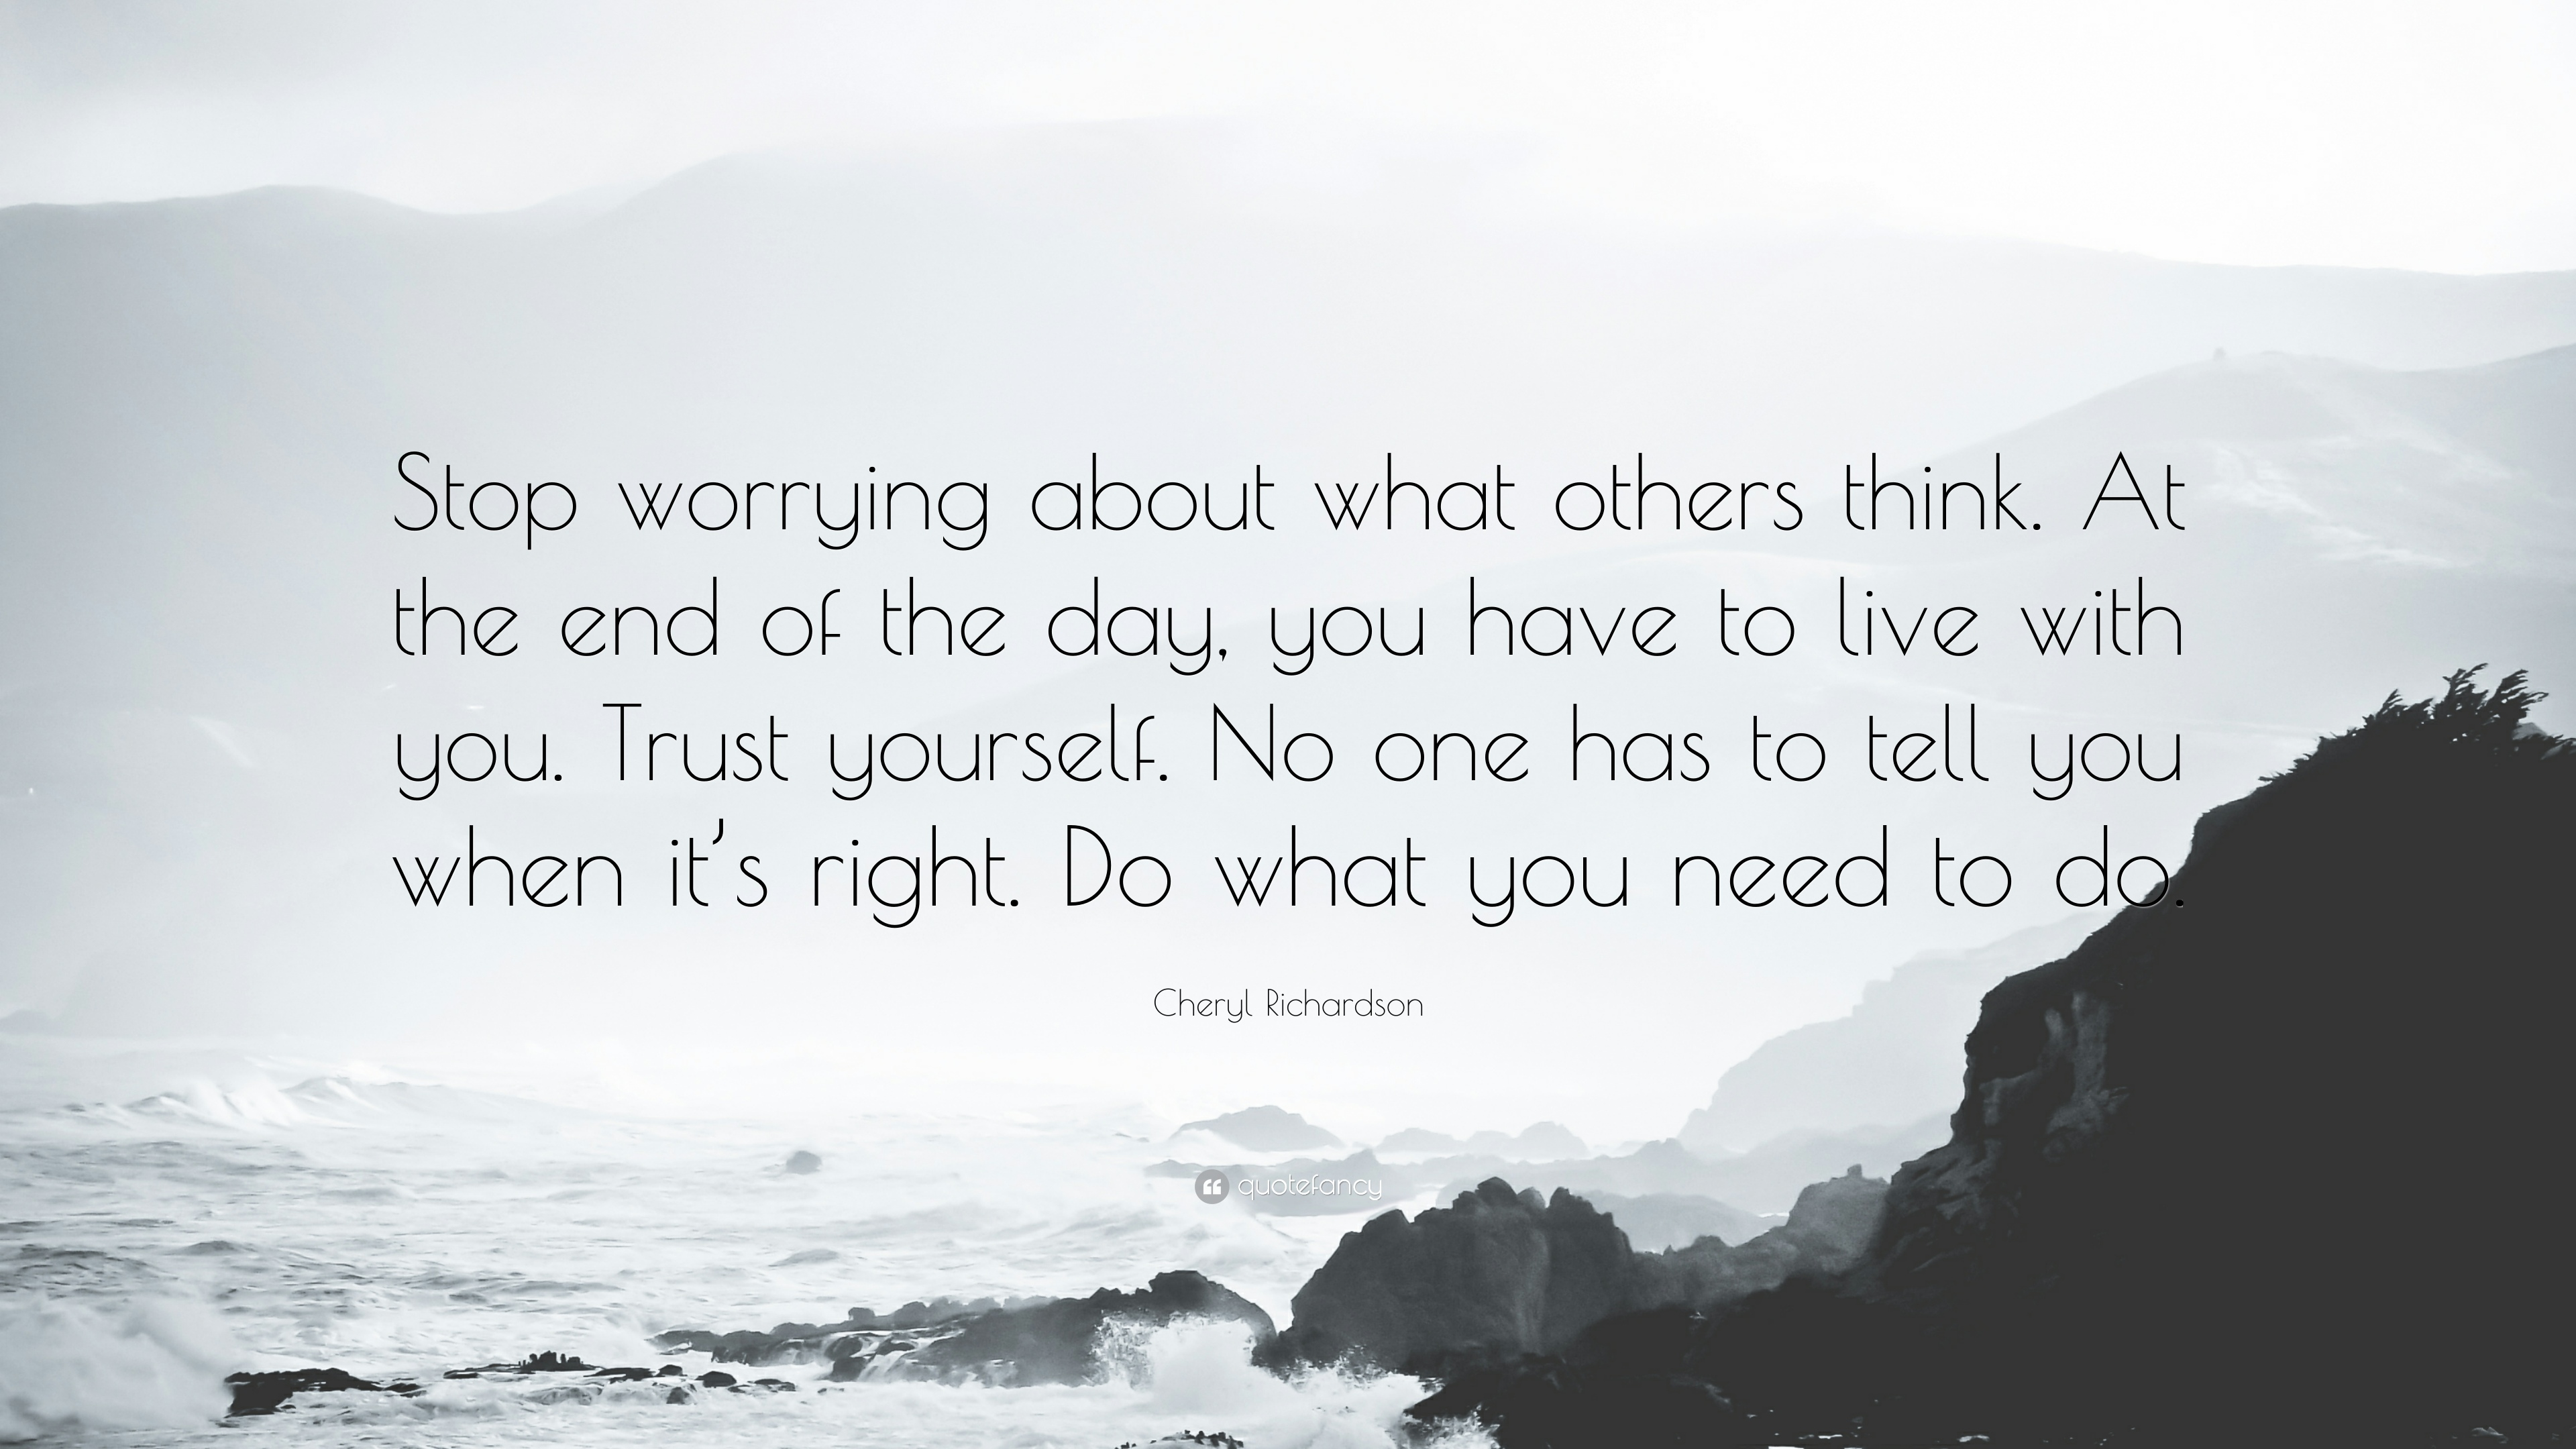 Stop worrying about what others think